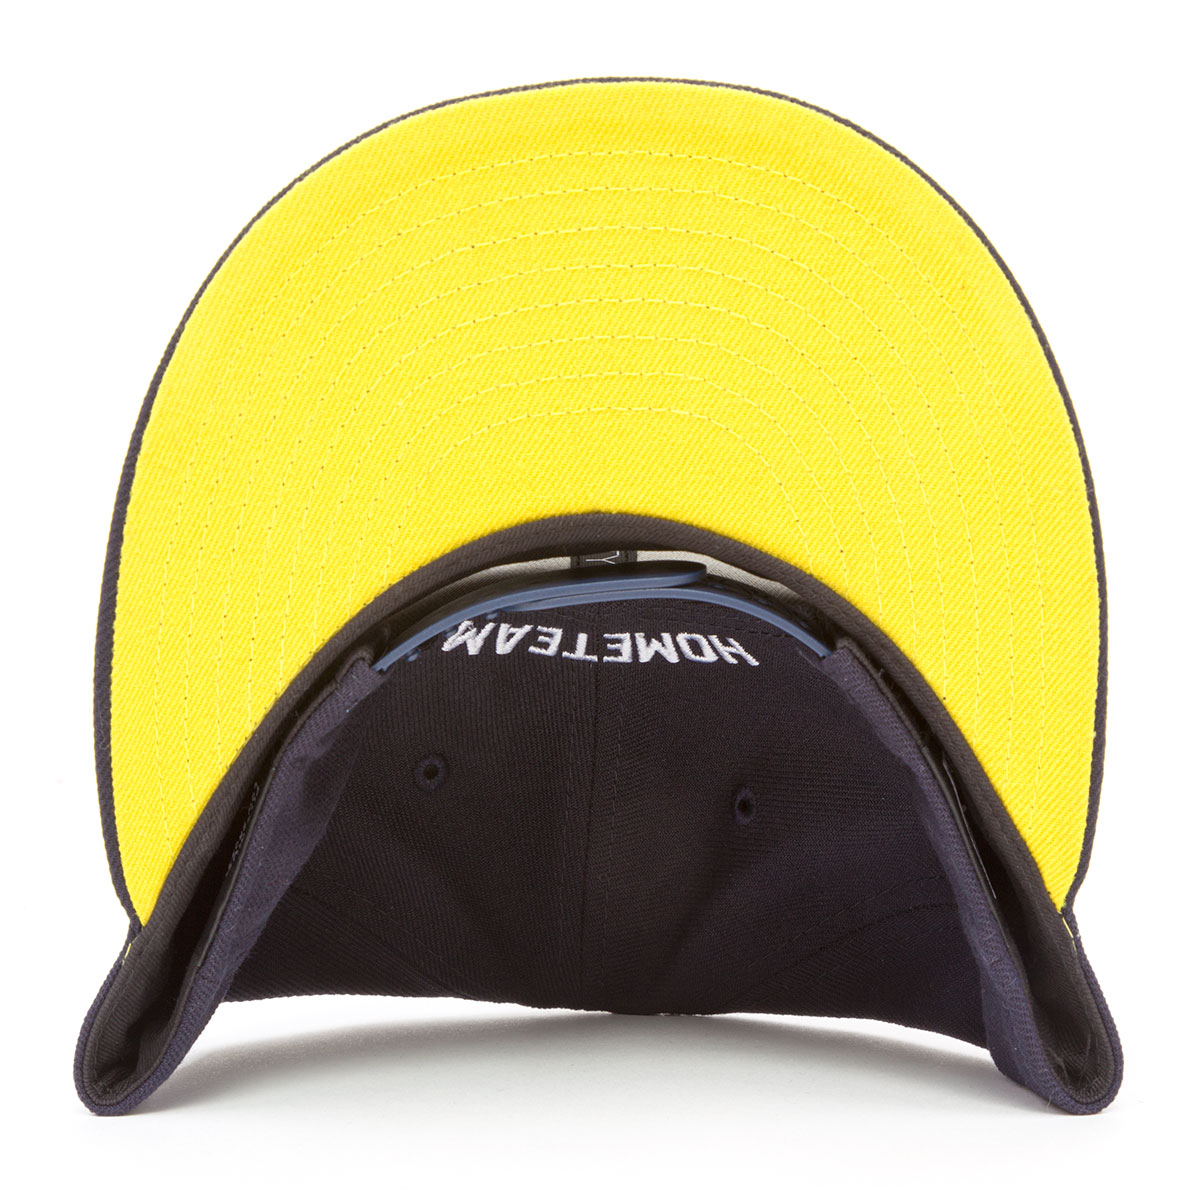 Spaceman New Era Hat Navy & Yellow